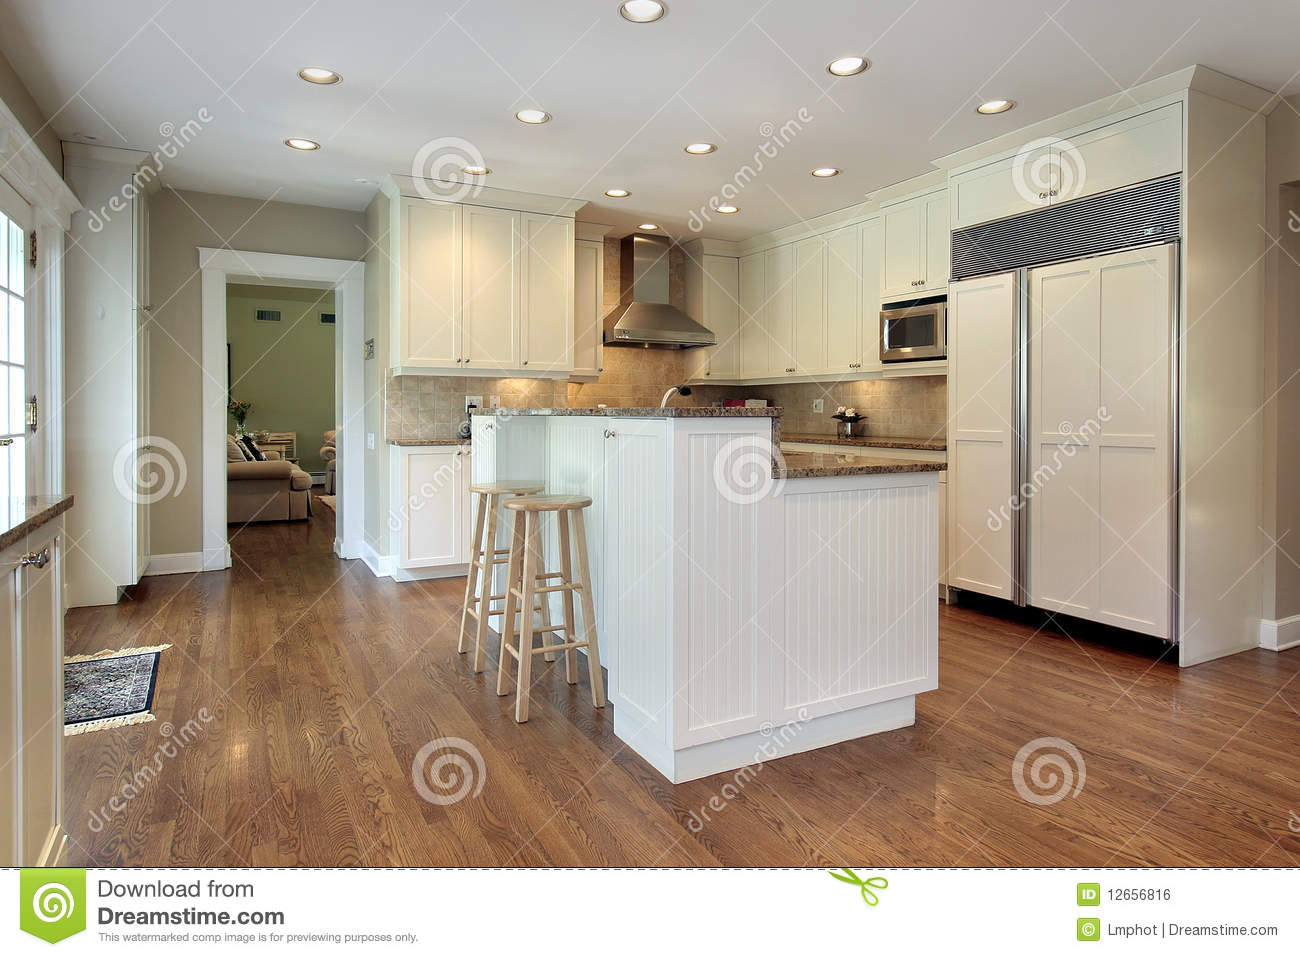 Kitchen With Two Tiered Island Royalty Free Stock Image